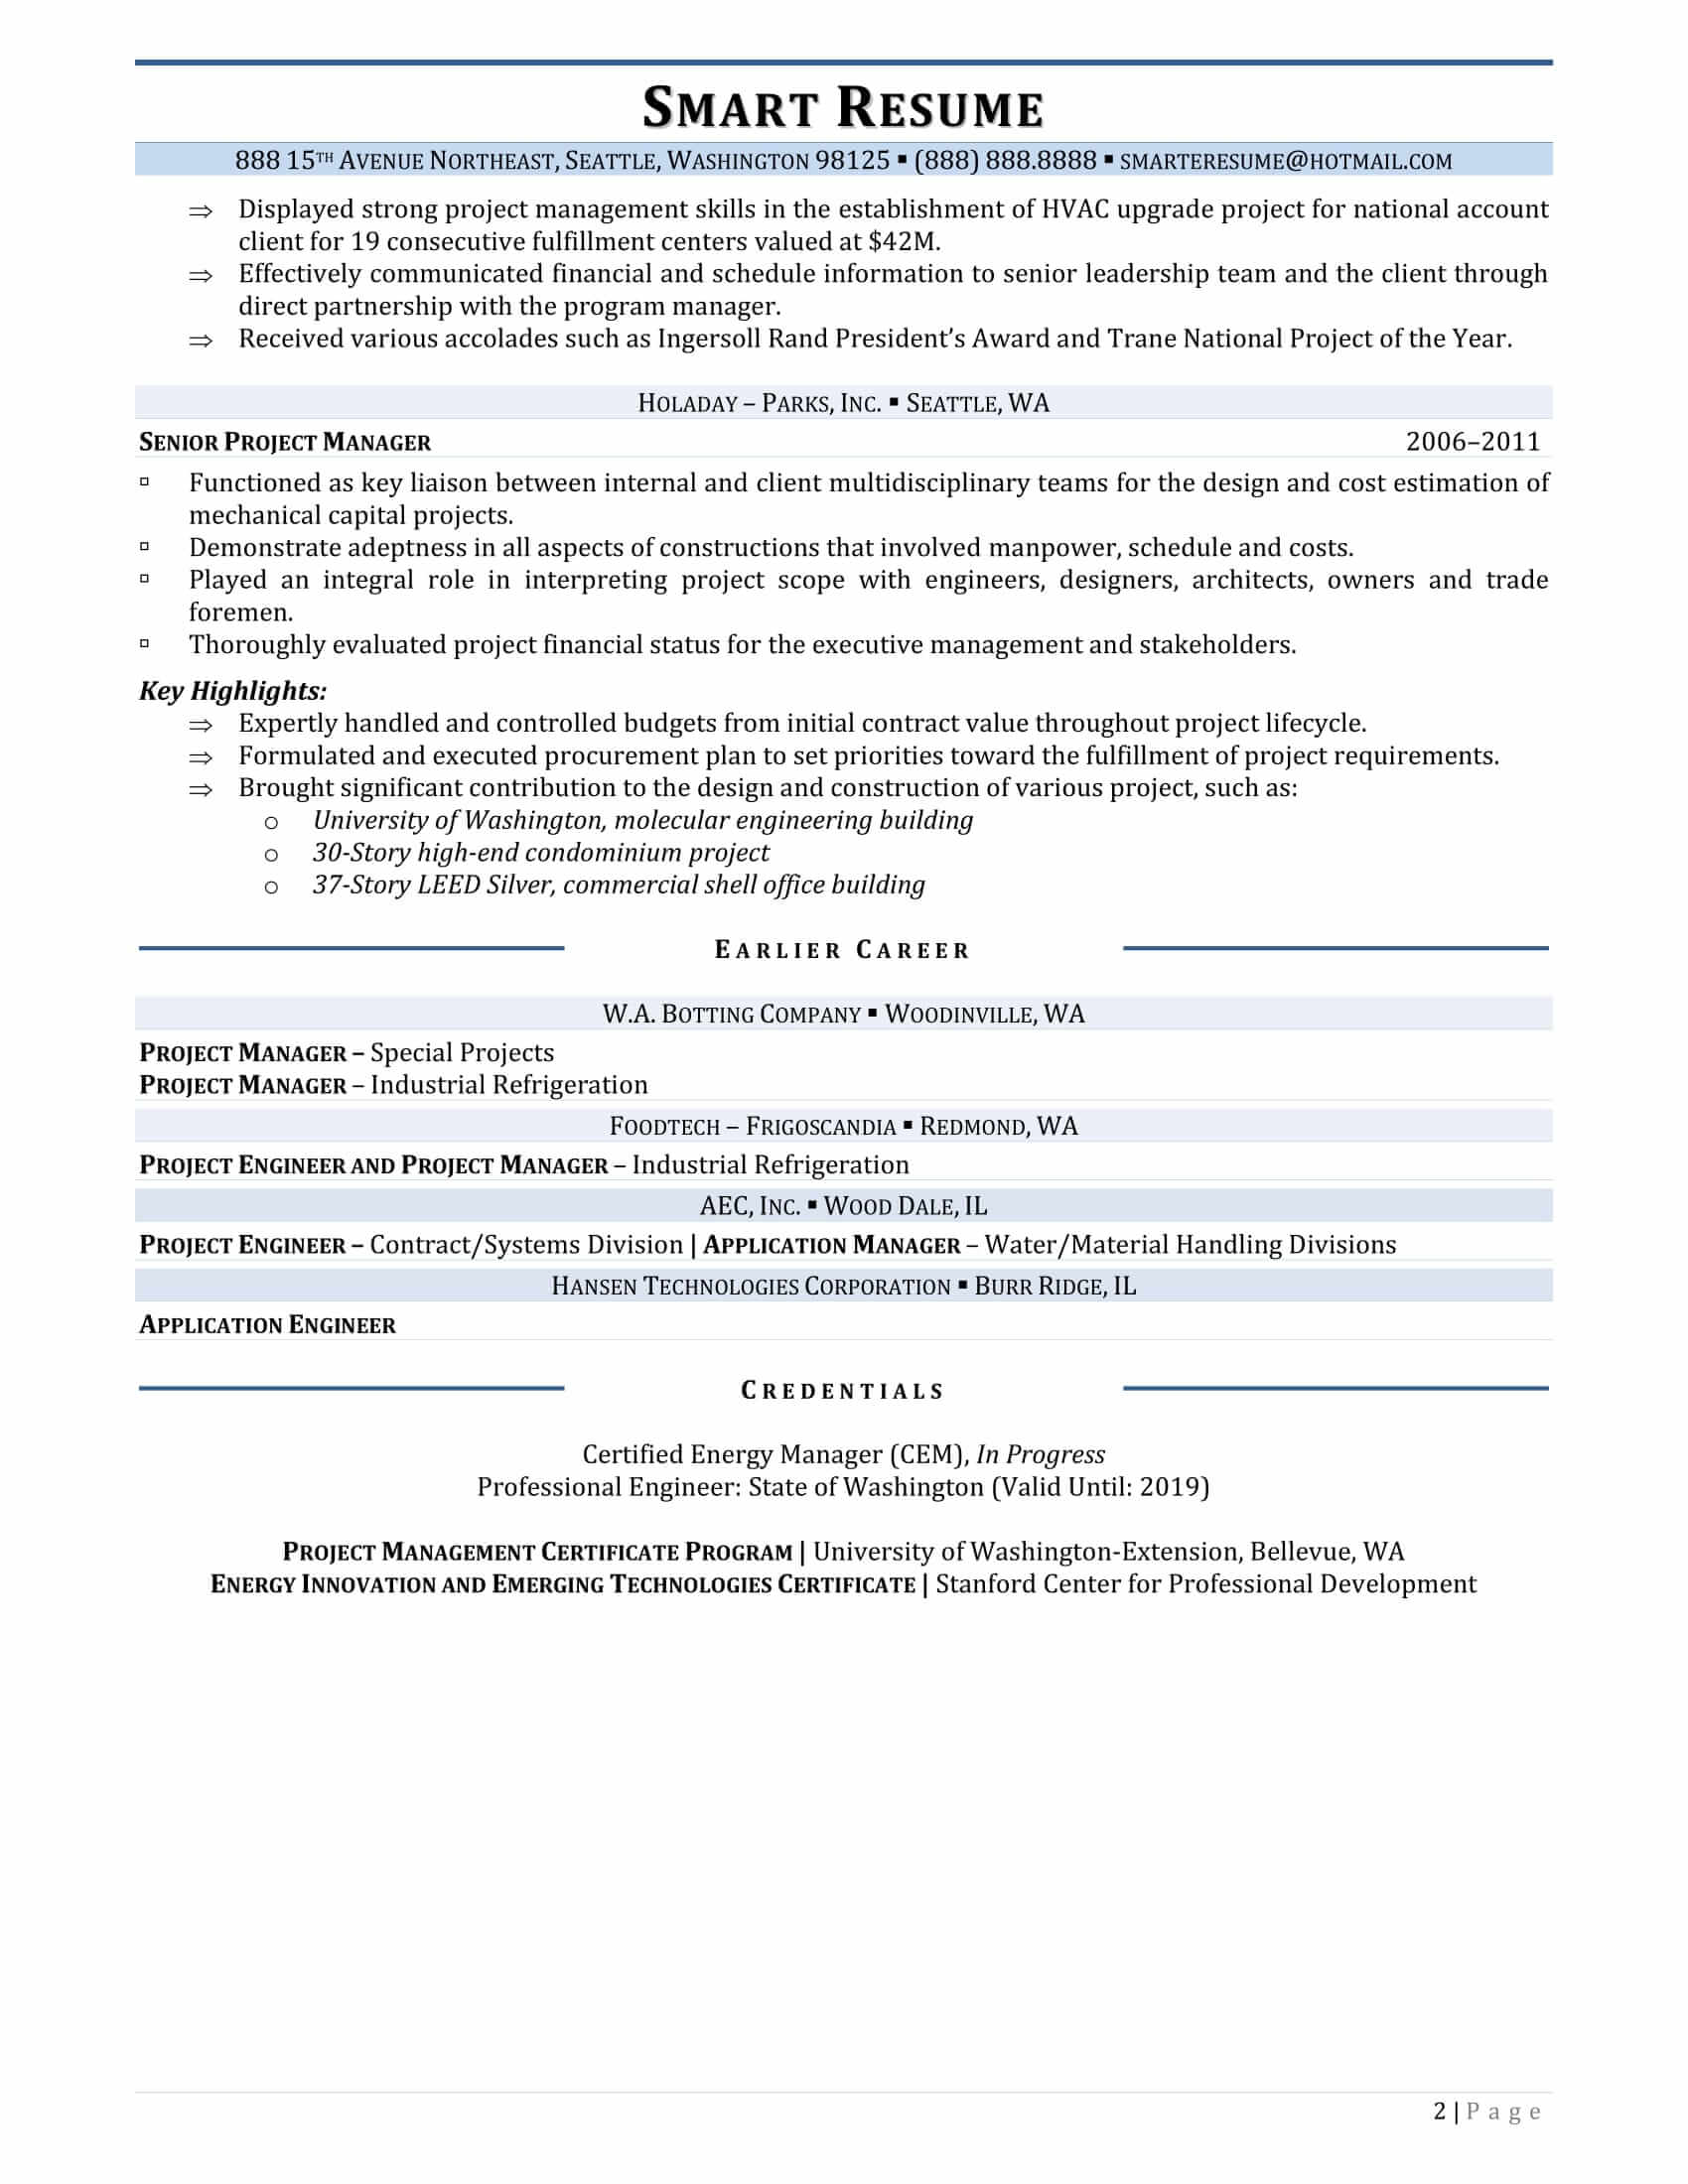 sample resume construction project manager easy sample resumes sample resume construction project manager samples smartresume construction project manager resume sample consultant